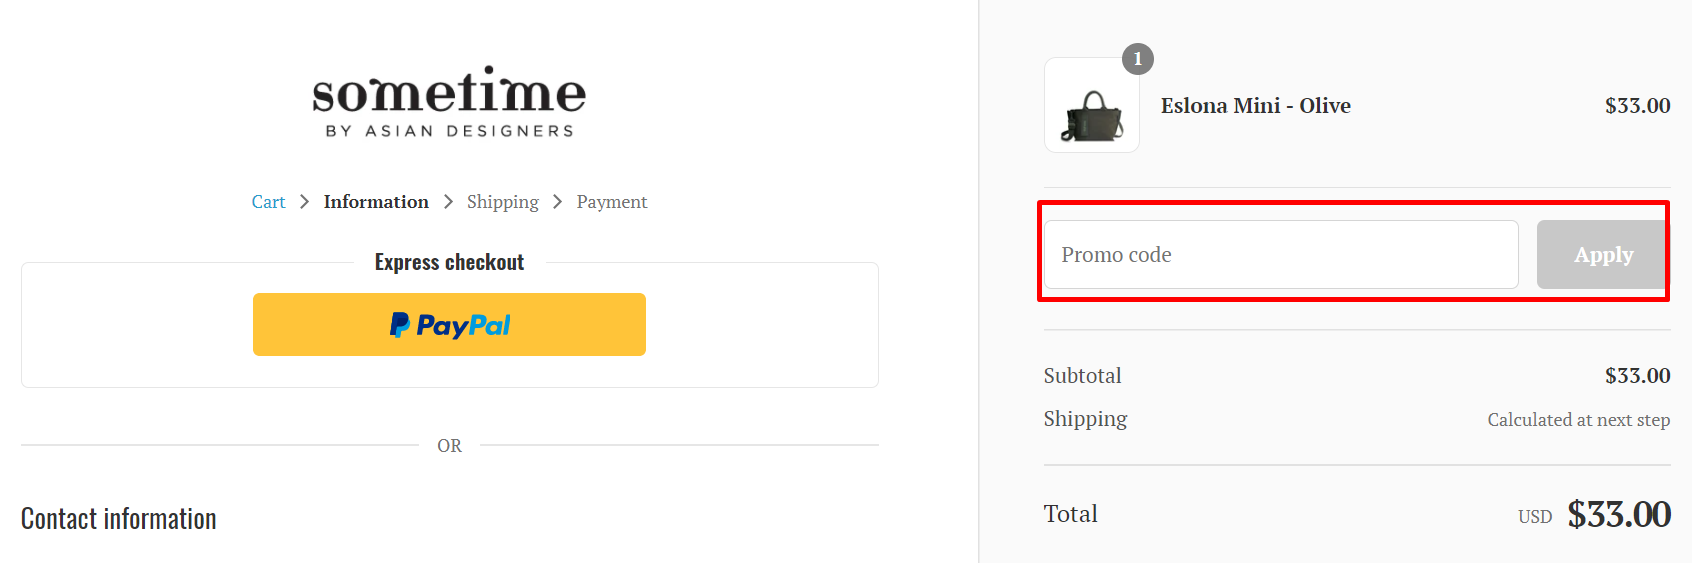 How do I use my Sometime By Asian Designers promo code?